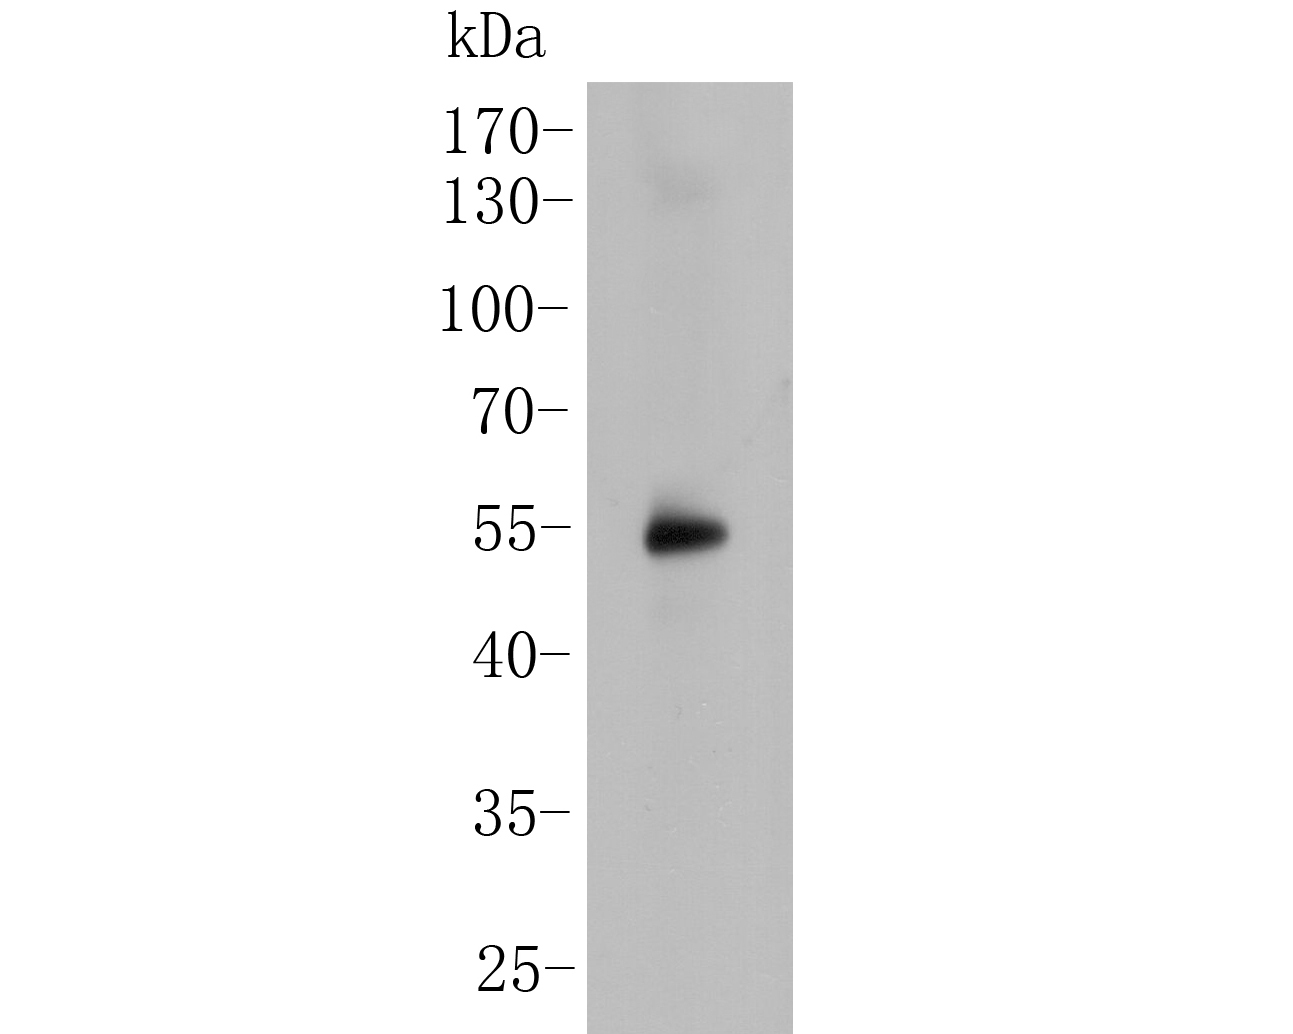 Western blot analysis of SSB on human lung tissue lysate. Proteins were transferred to a PVDF membrane and blocked with 5% BSA in PBS for 1 hour at room temperature. The primary antibody (ER2001-50, 1/500) was used in 5% BSA at room temperature for 2 hours. Goat Anti-Rabbit IgG - HRP Secondary Antibody (HA1001) at 1:5,000 dilution was used for 1 hour at room temperature.